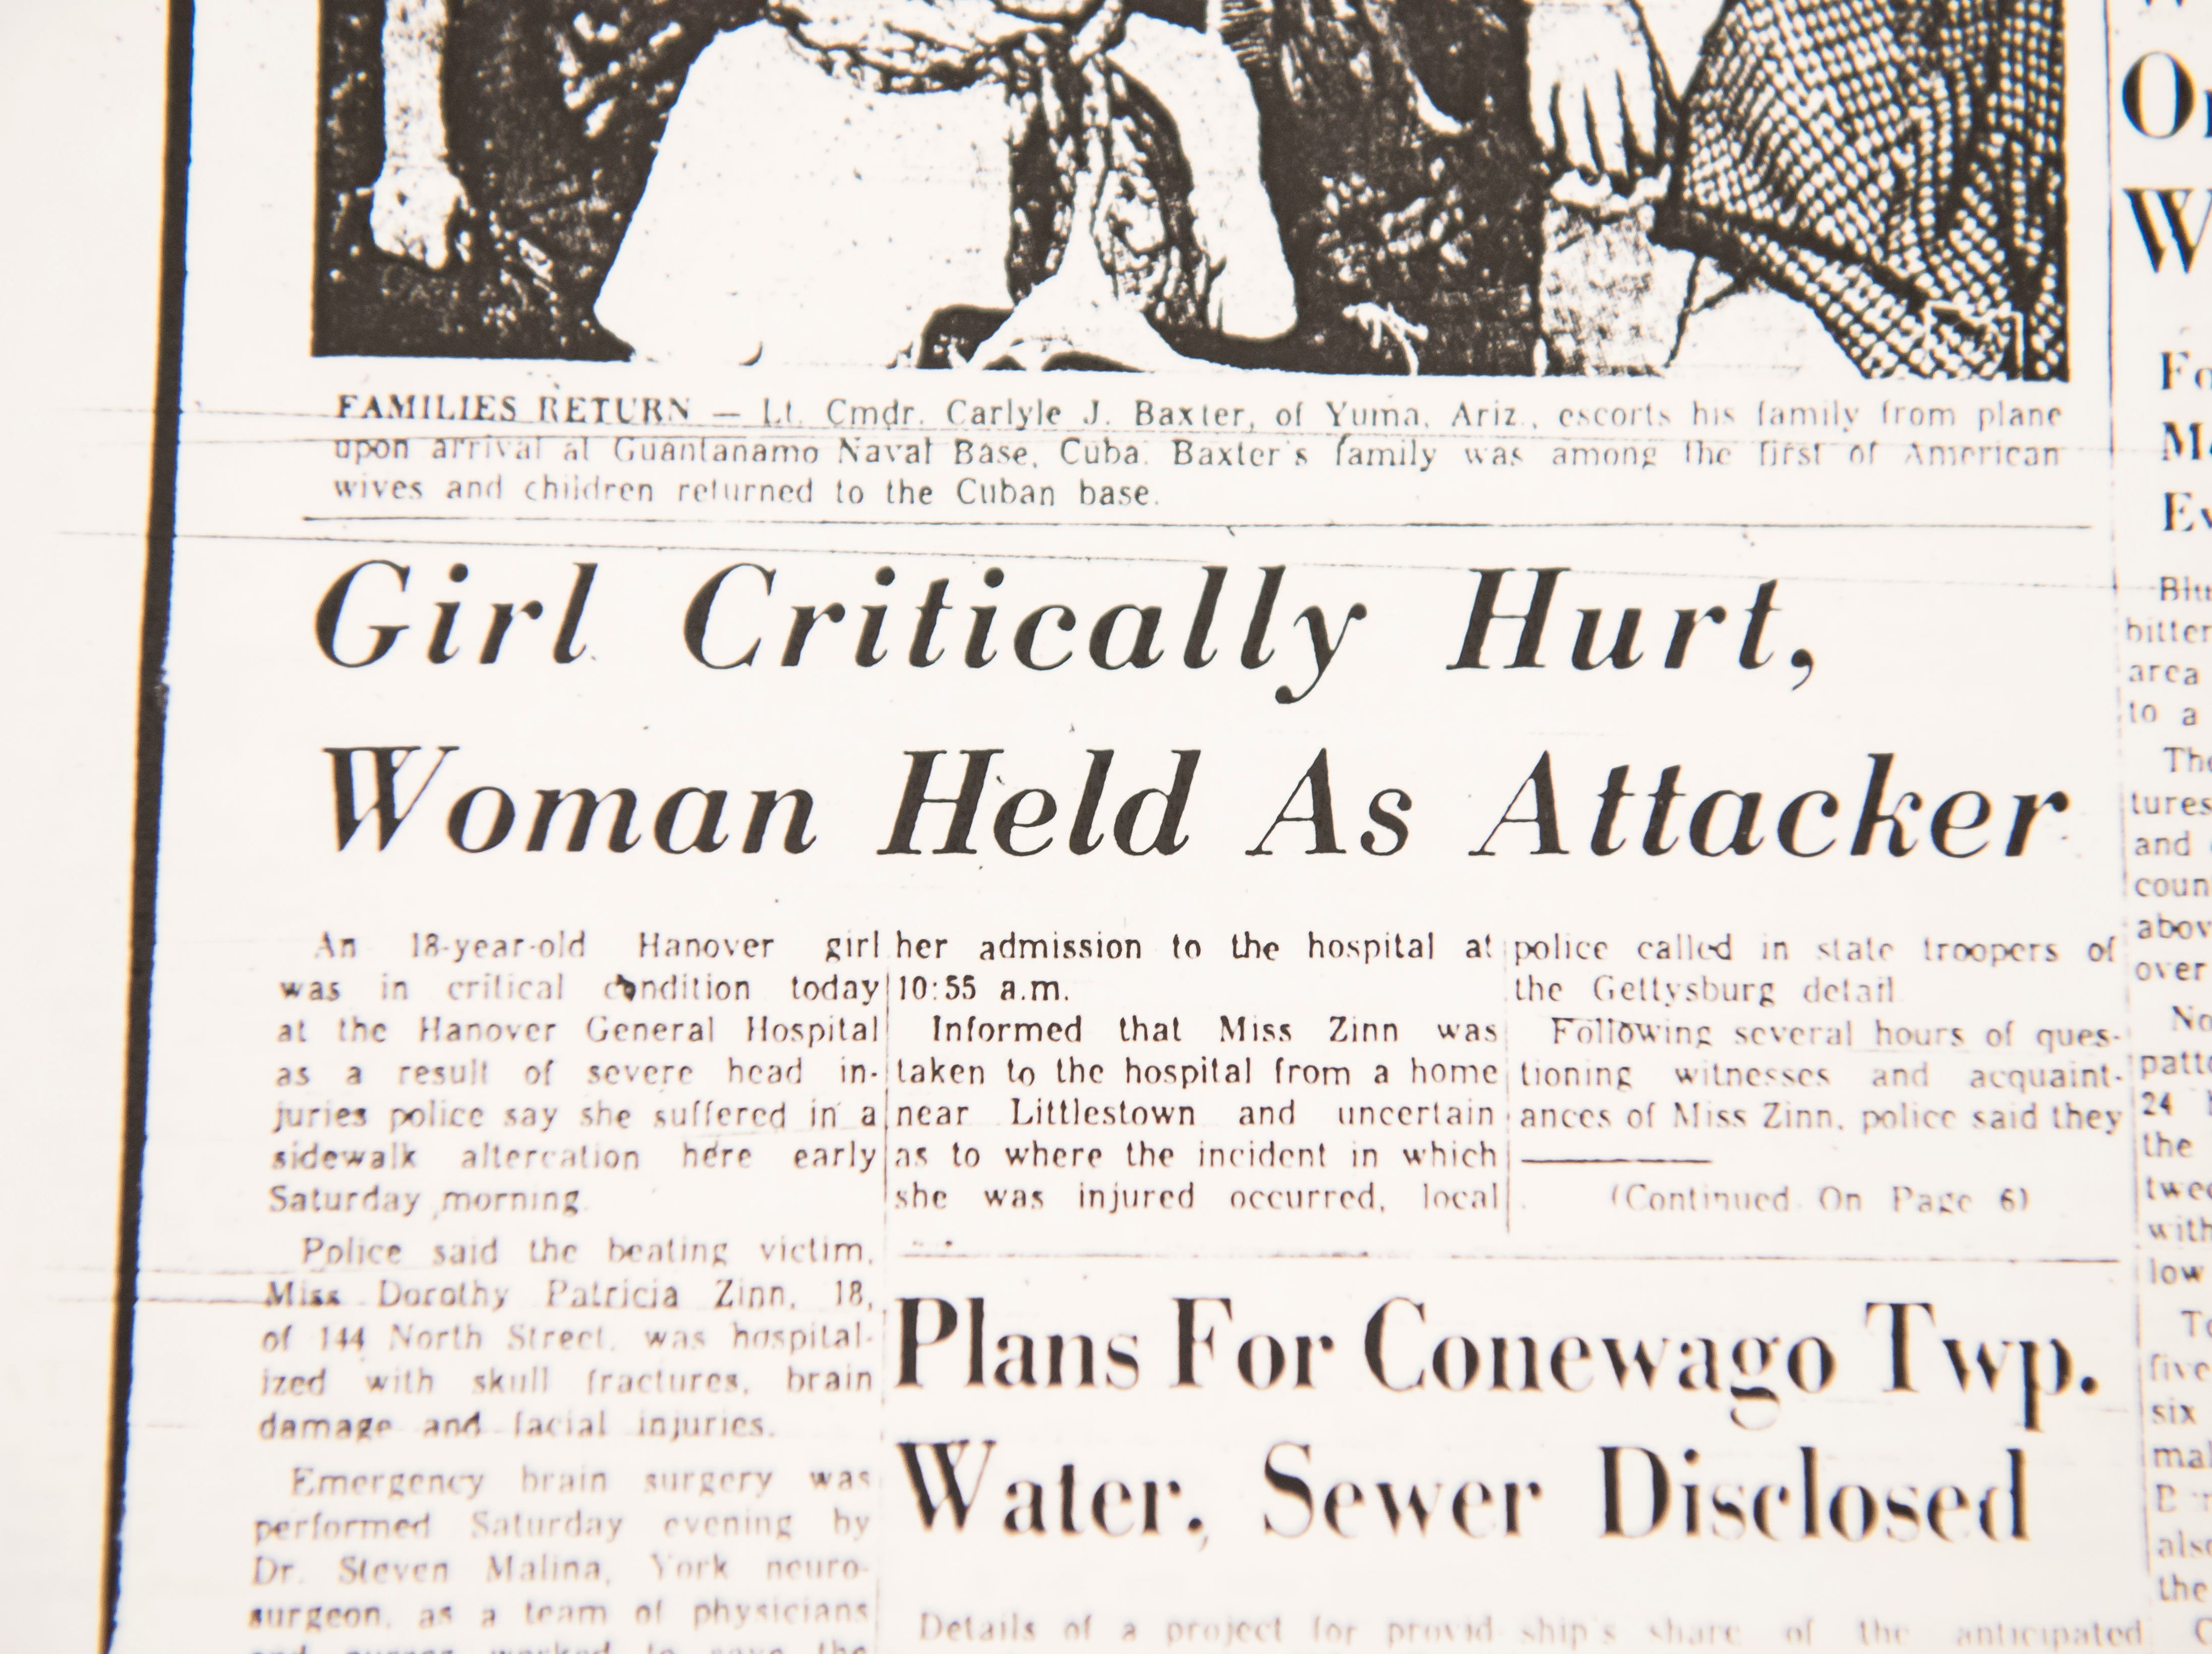 An article from 1962 details the case of Dorothy Zinn and Patricia Osborne Livingston who got in a fight over Livingston's husband.